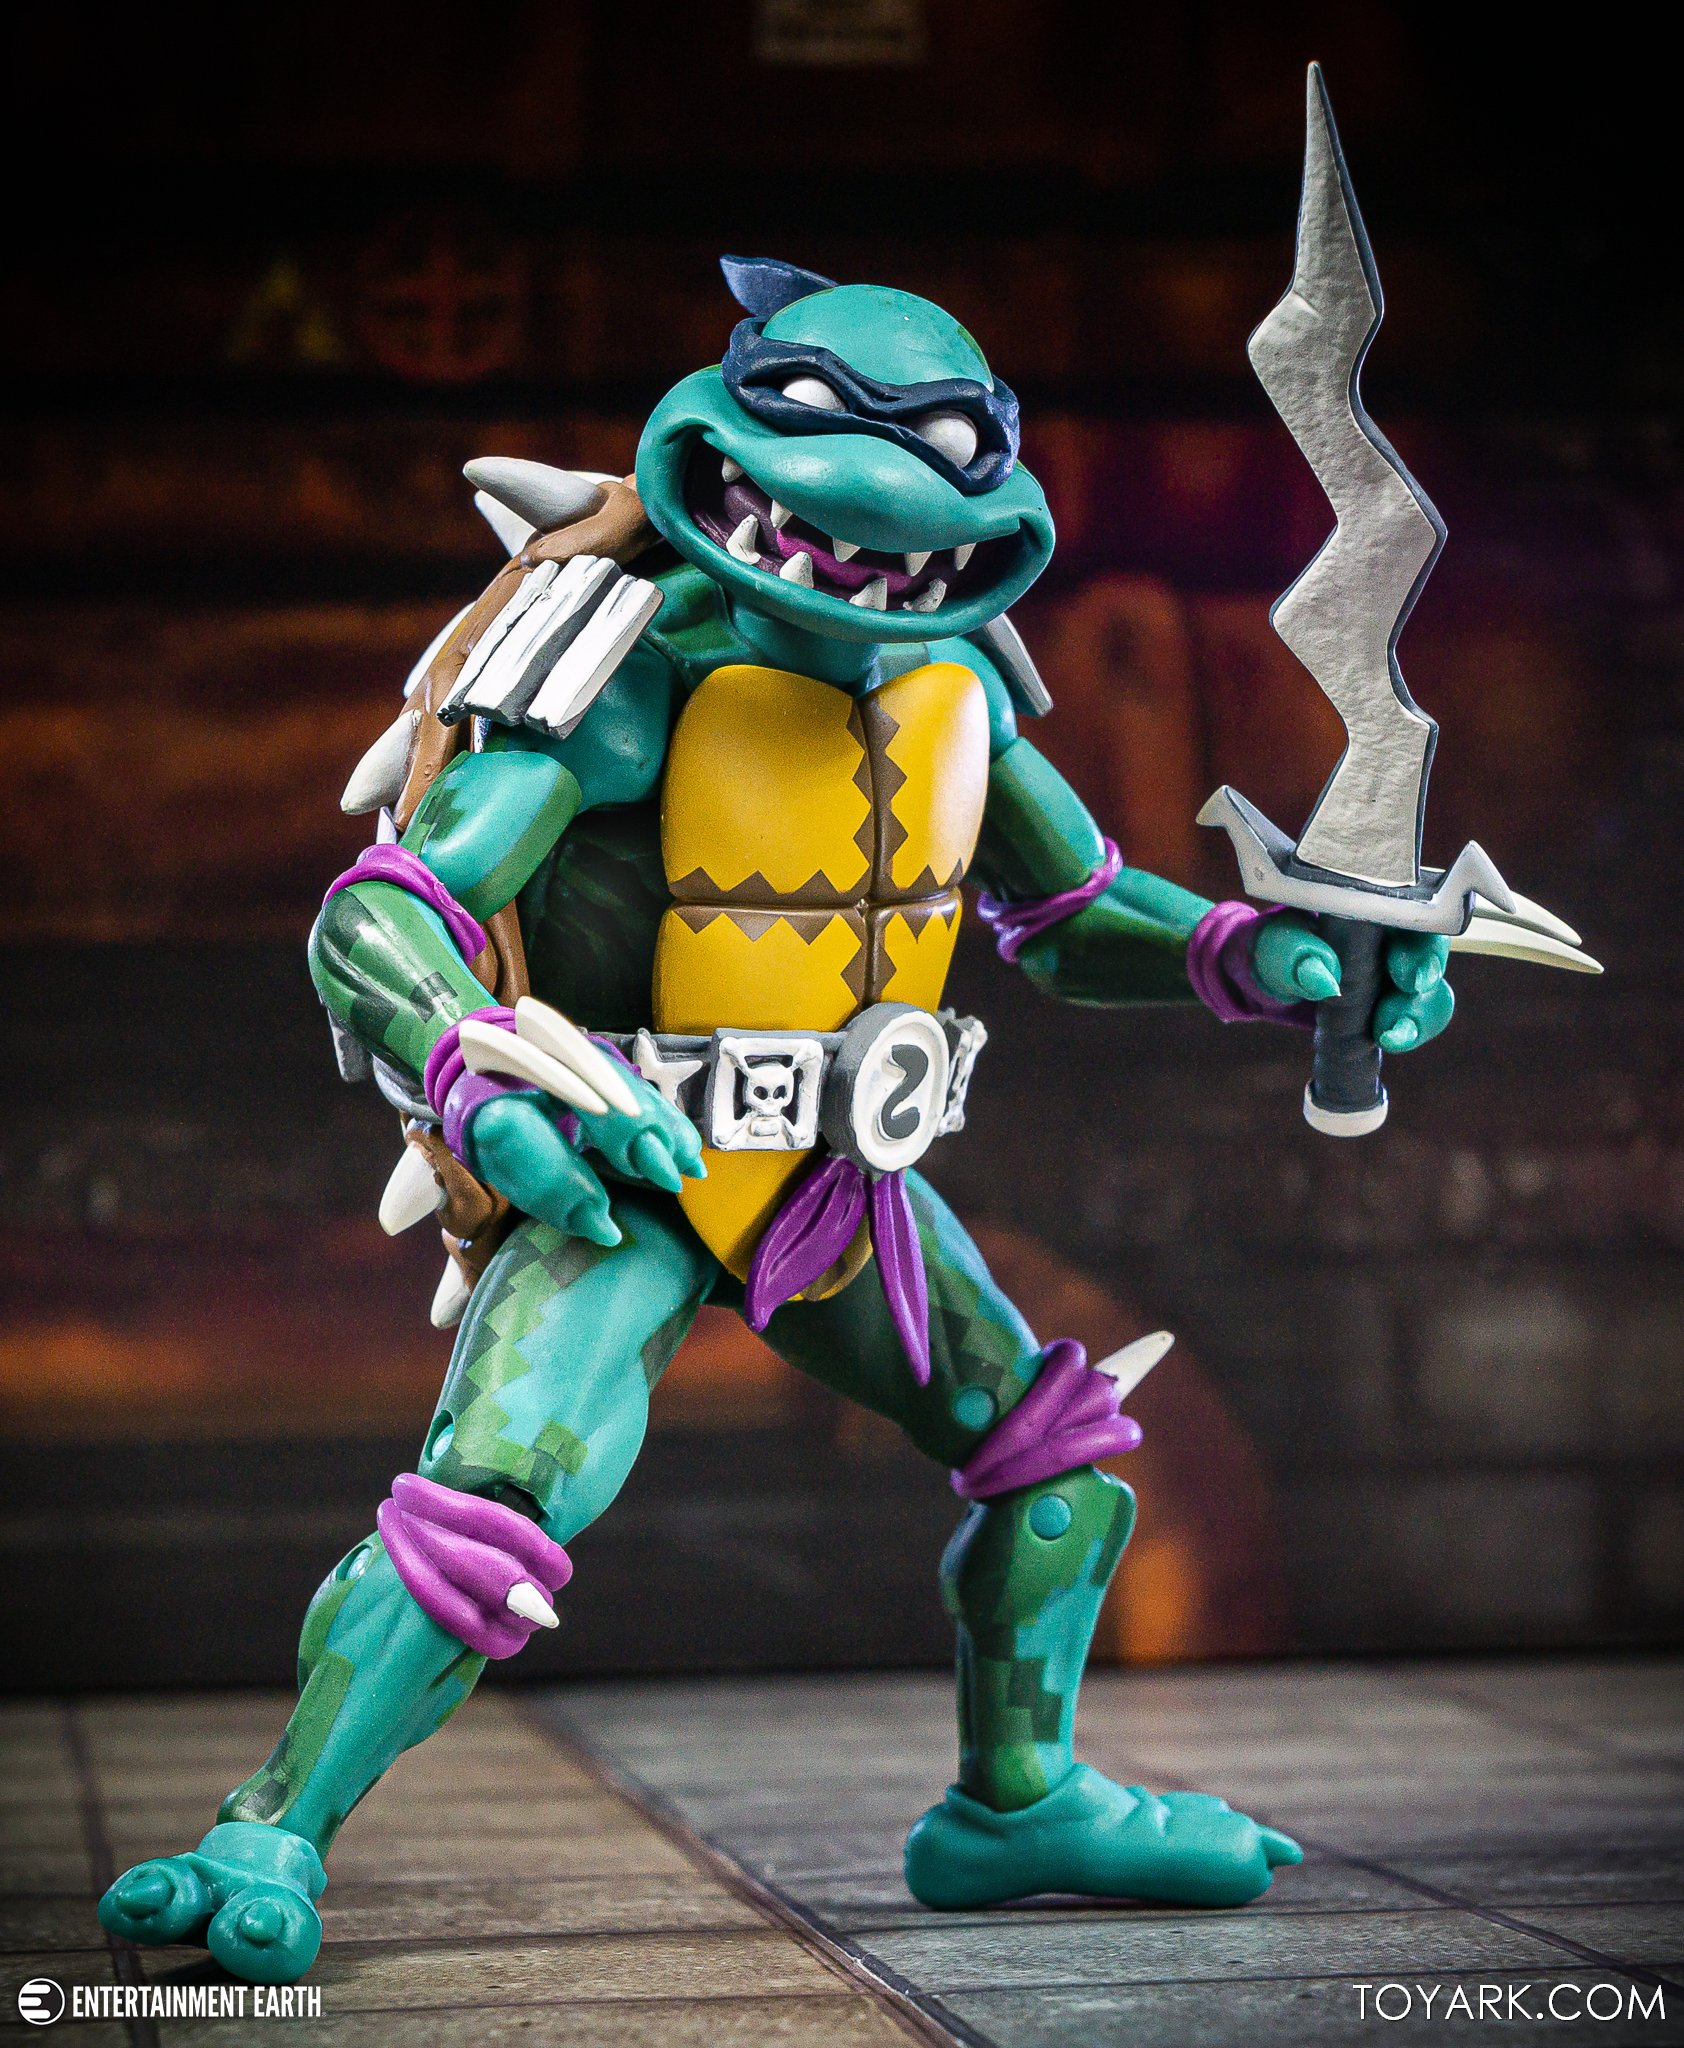 https://news.toyark.com/wp-content/uploads/sites/4/2020/06/NECA-TMNT-Turtles-In-Time-S1-051.jpg